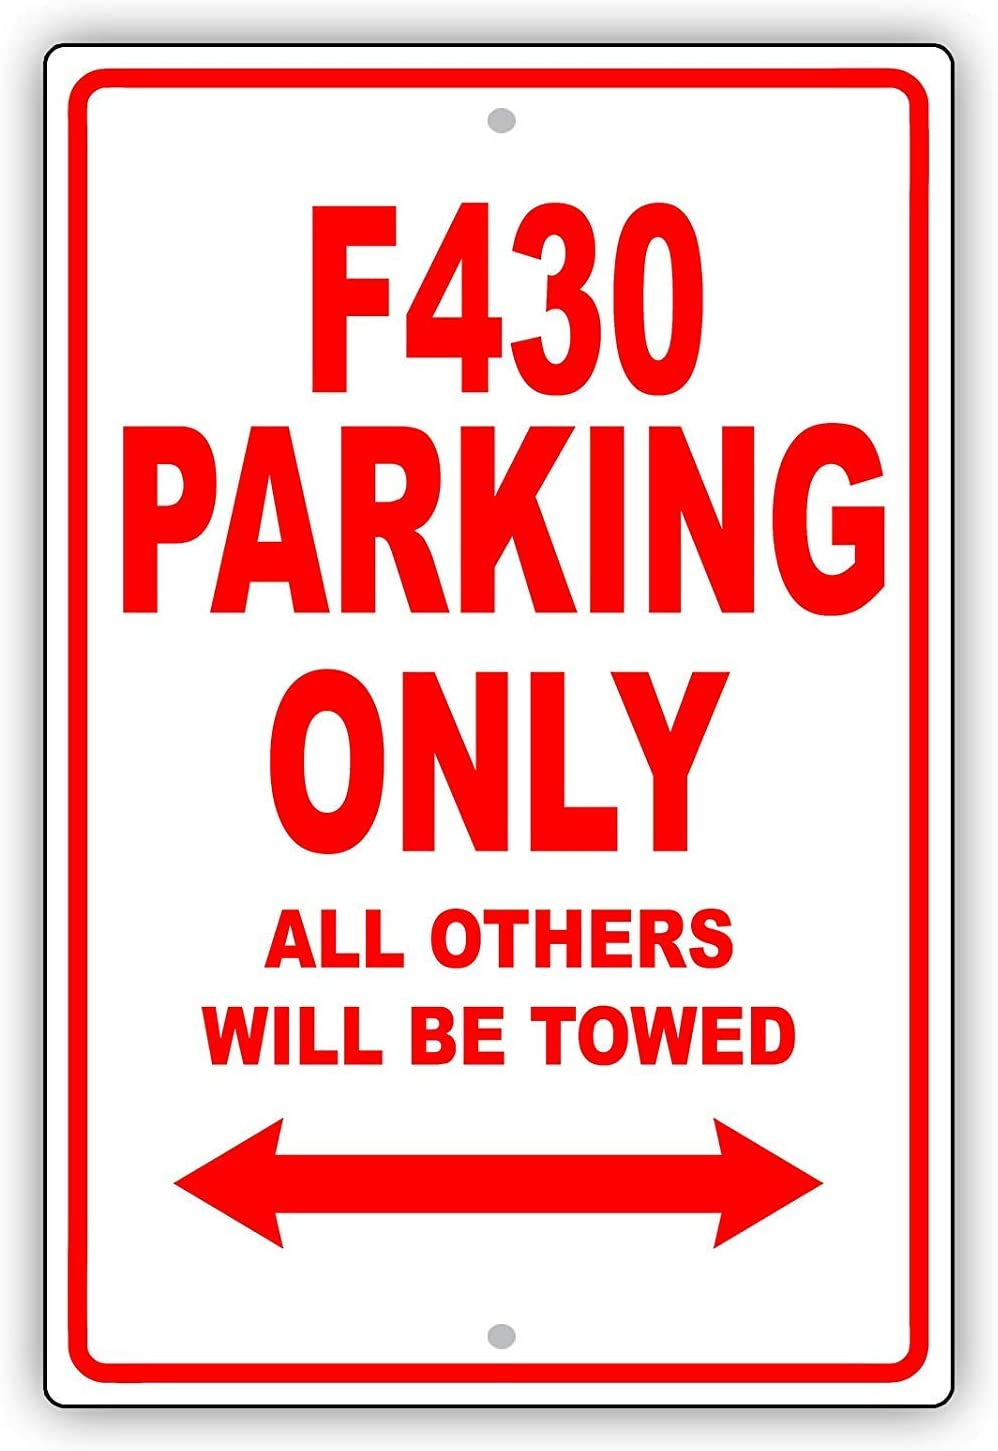 6x9 inches Multi Fhdang Decor Ferrari F430 Parking Only All Other Will Be Towed Ridiculous Funny Garage Metallschild Aluminium Schild Metall